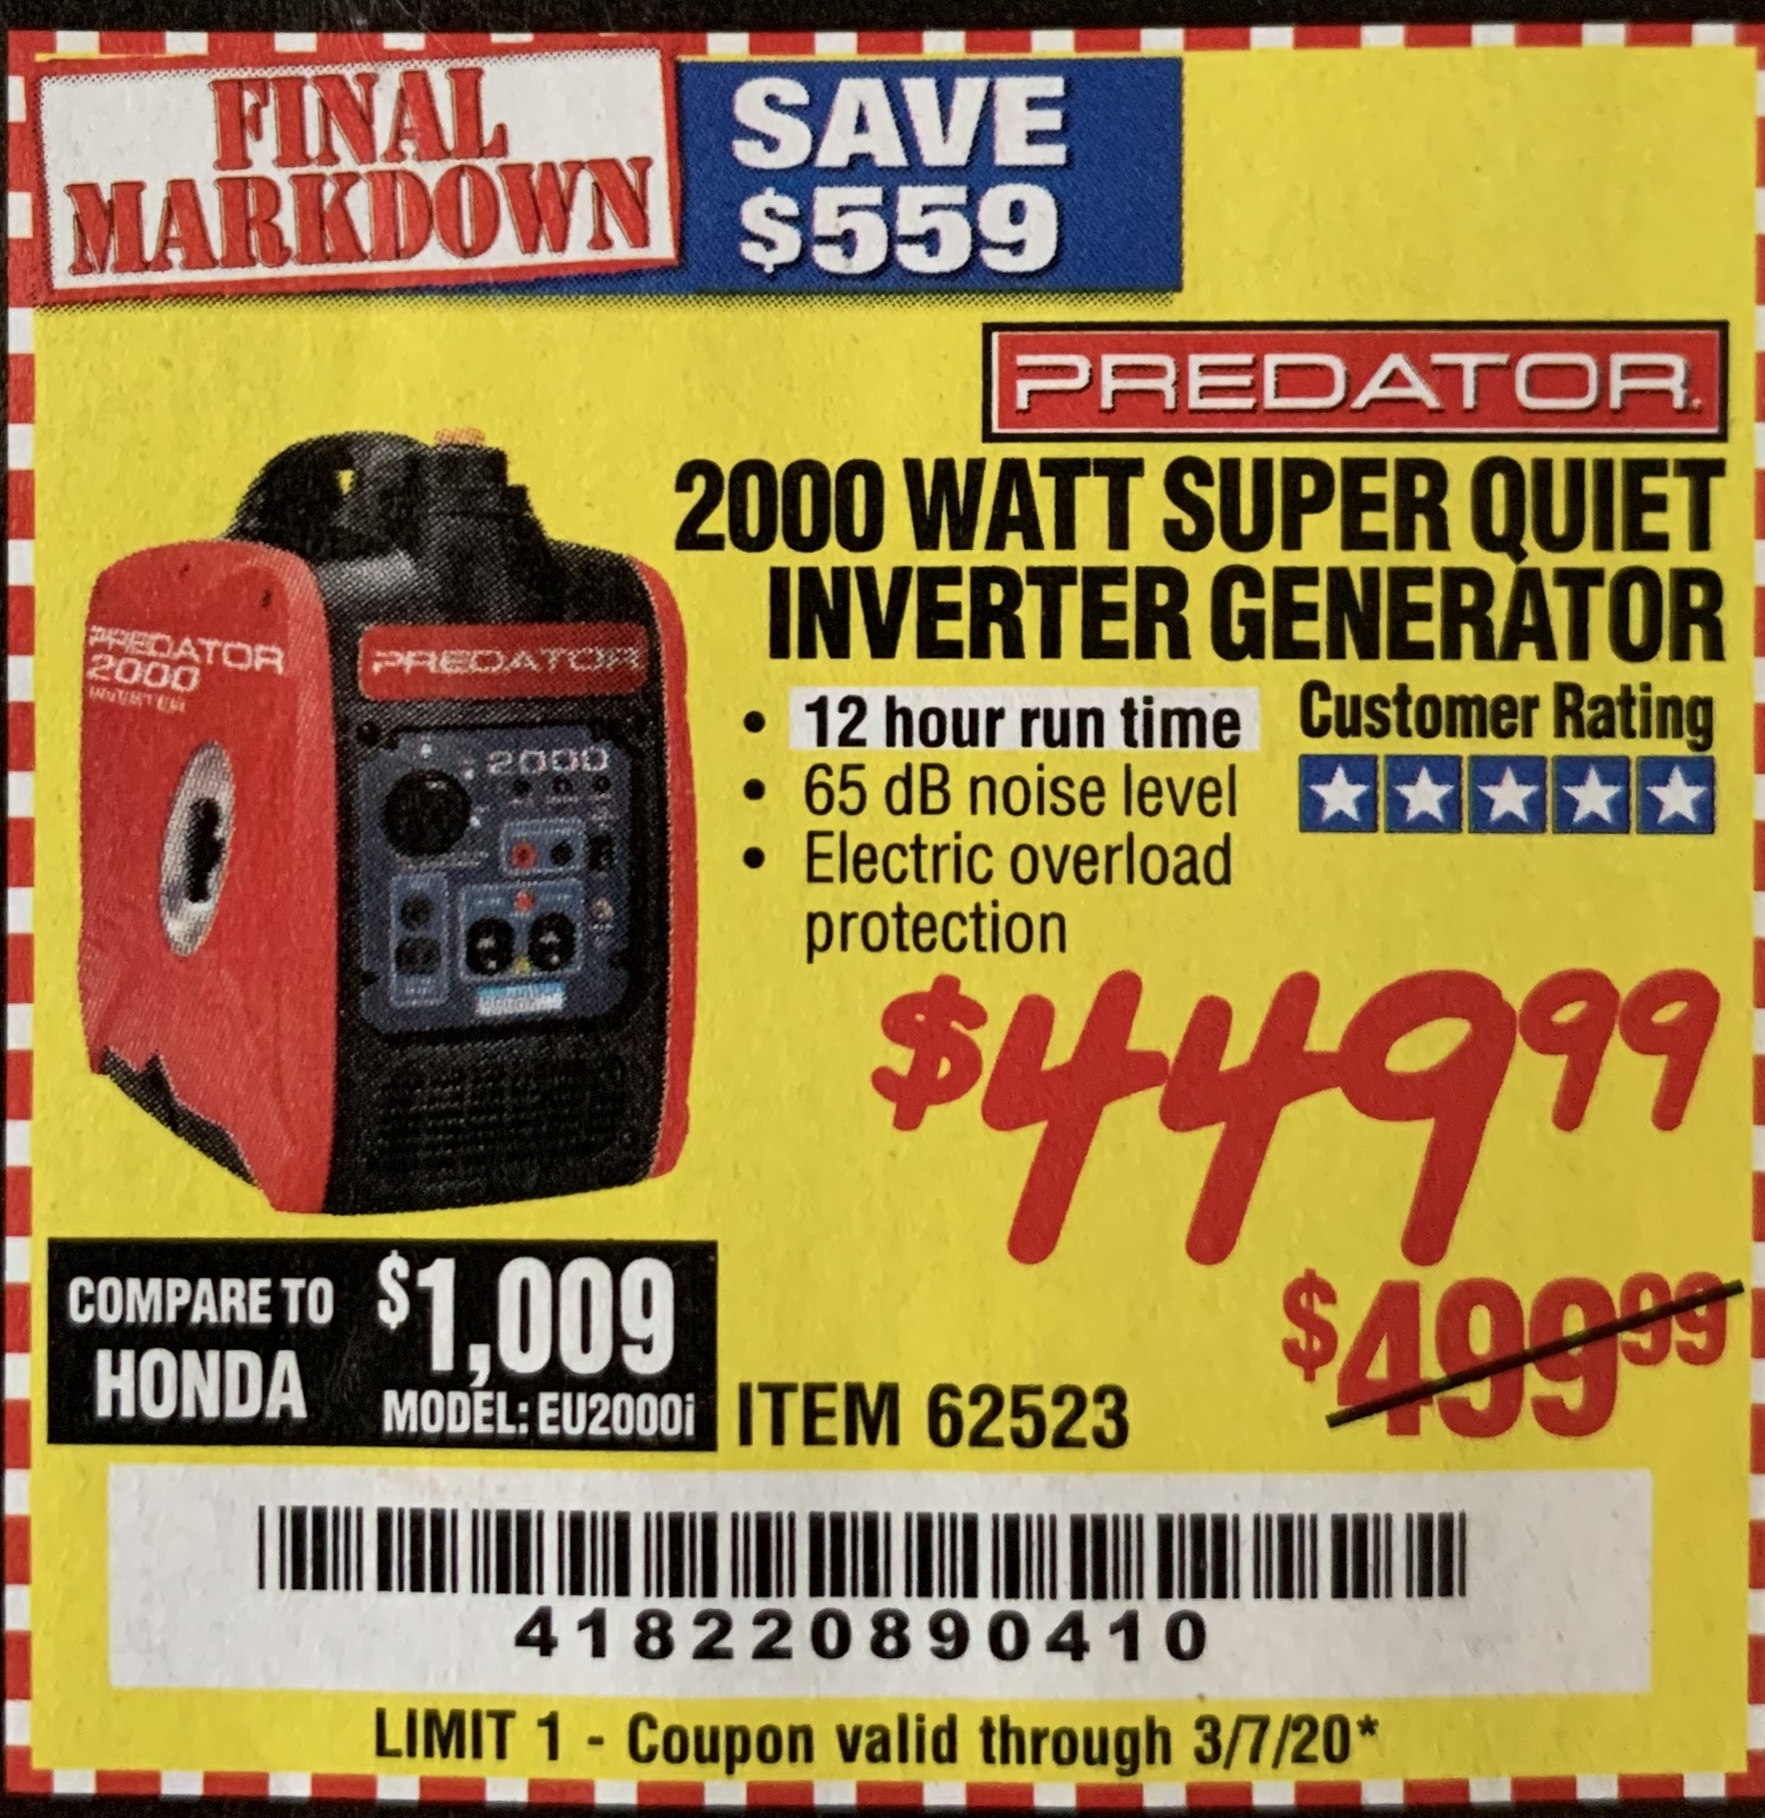 Harbor Freight 2000 WATT SUPER QUIET INVERTER GENERATOR coupon